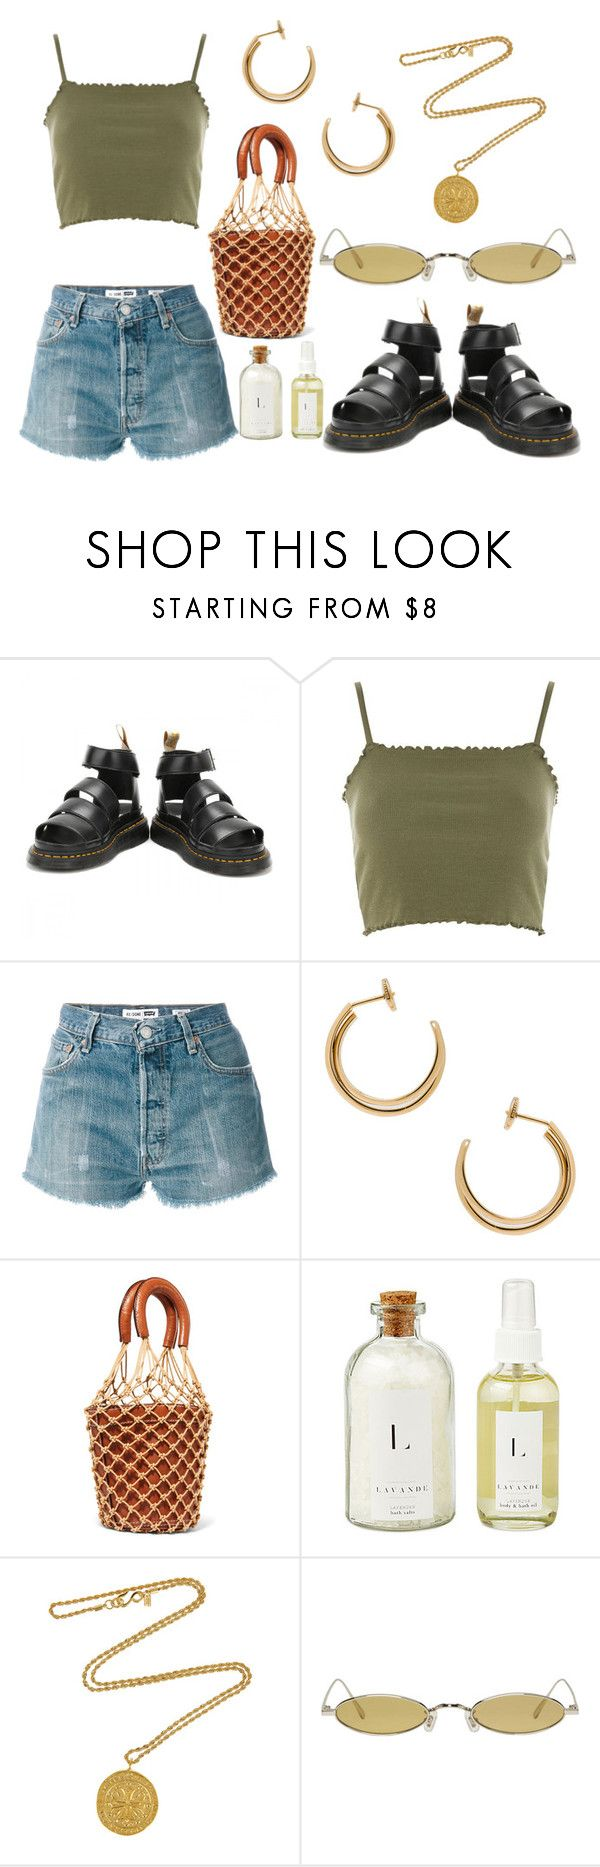 Untitled 351 by stoutjami on polyvore featuring dr martens topshop